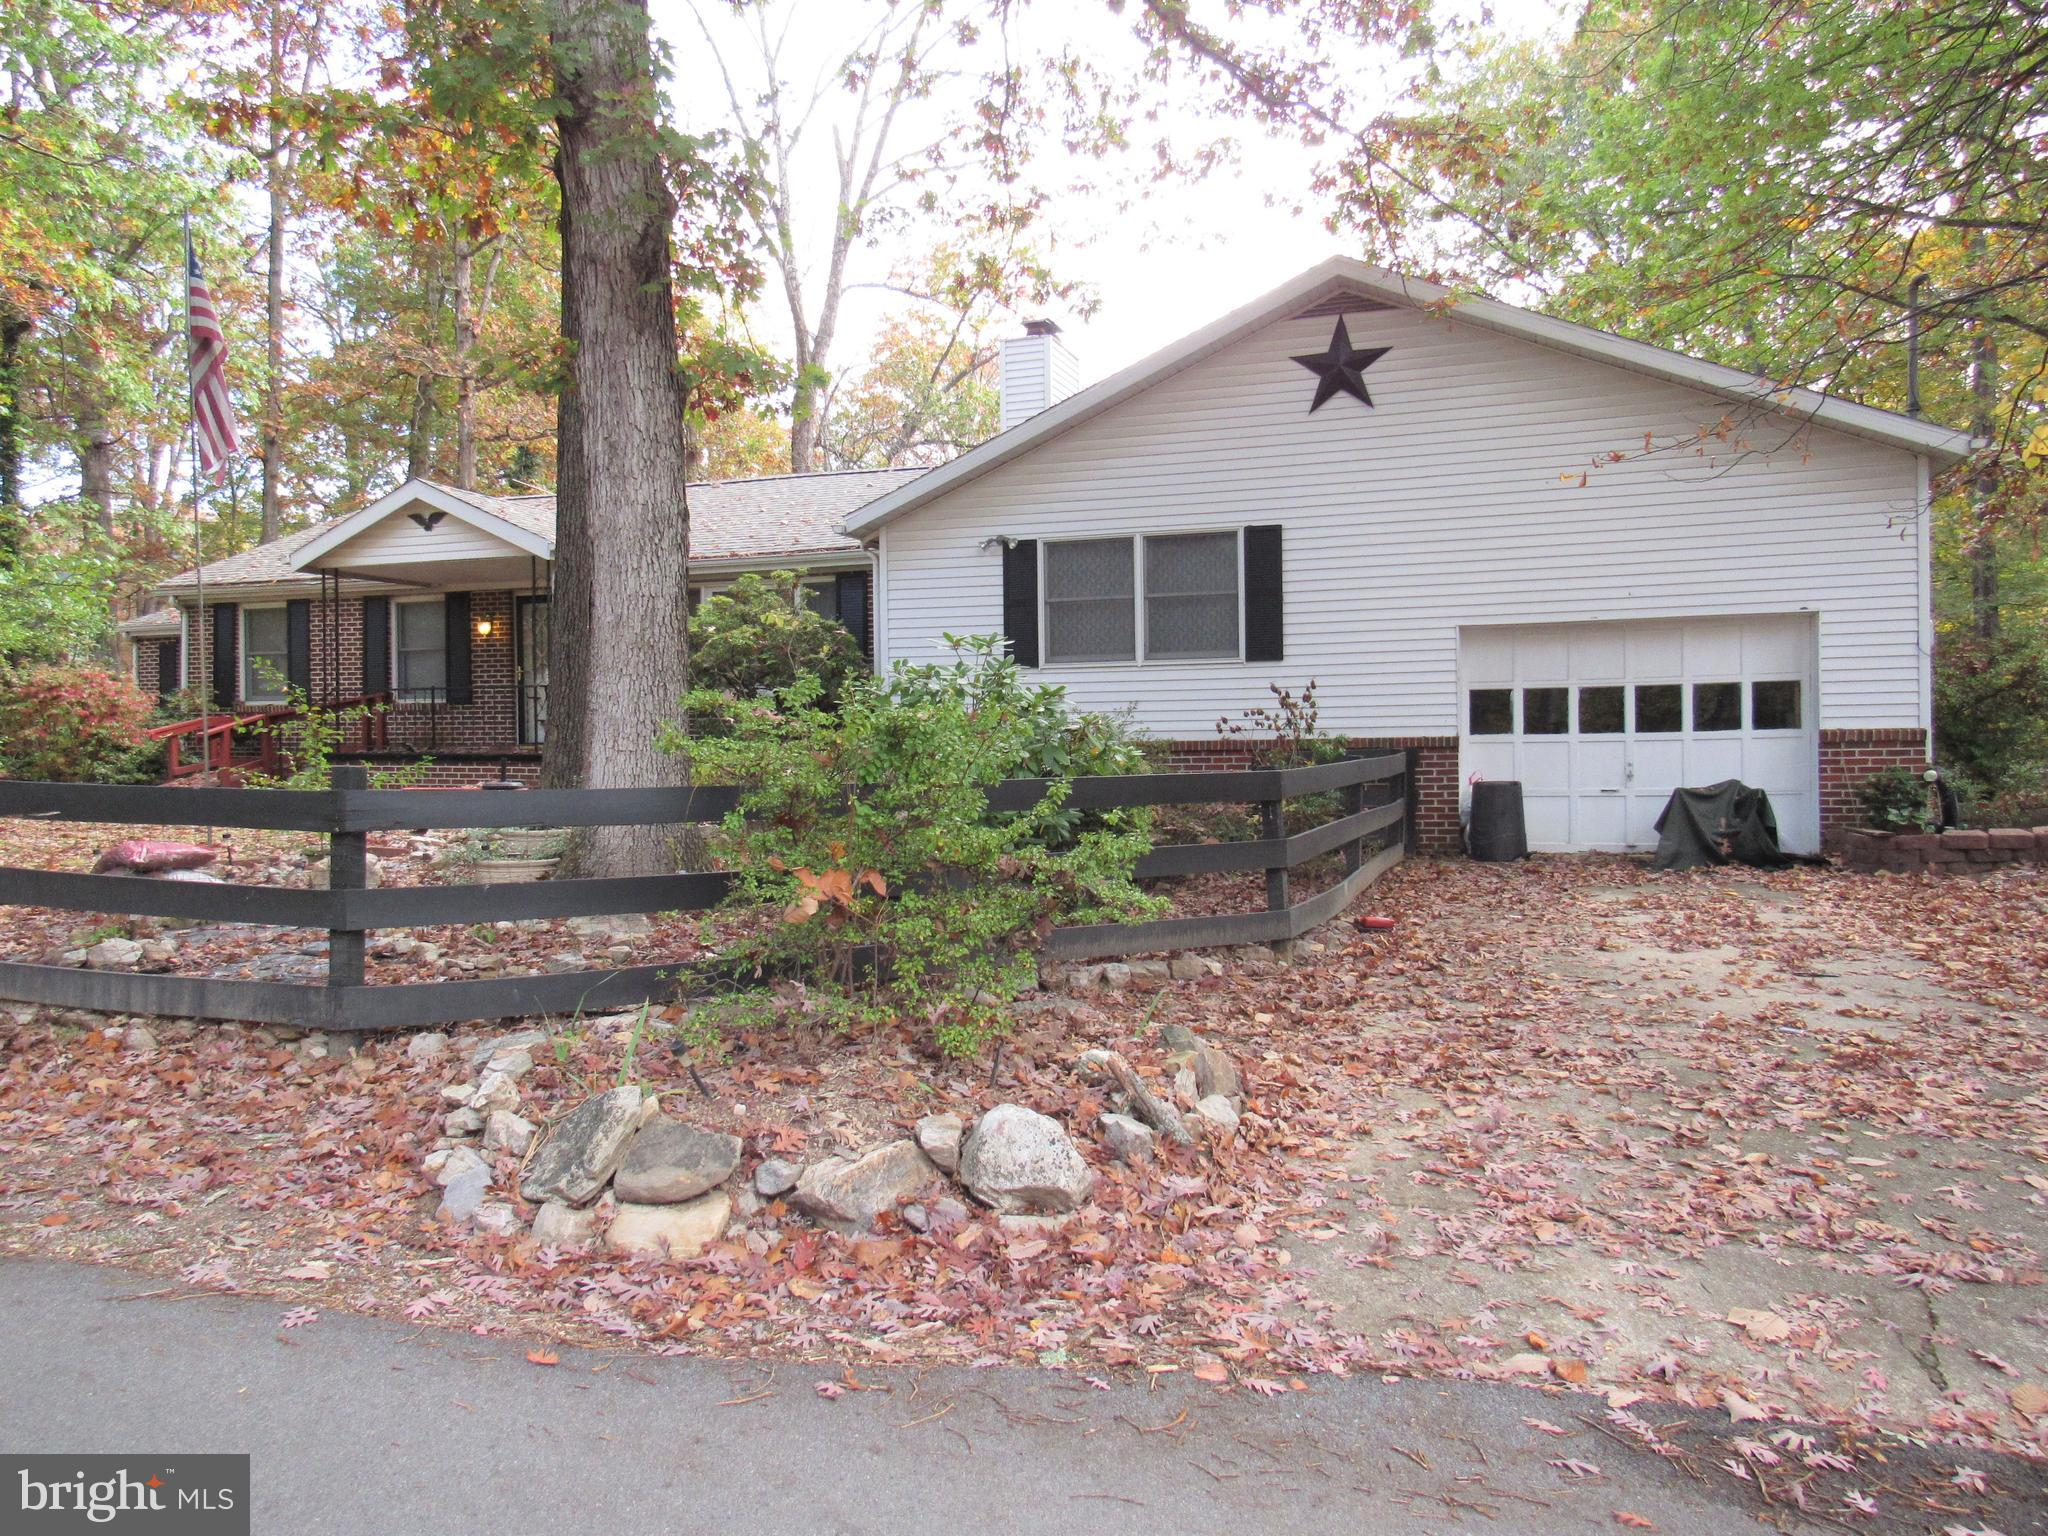 SELLERS HAVE PUT ON A NEW ROOF AND WE ARE BACK ON THE MARKET!!! Welcome home to this rancher with 3